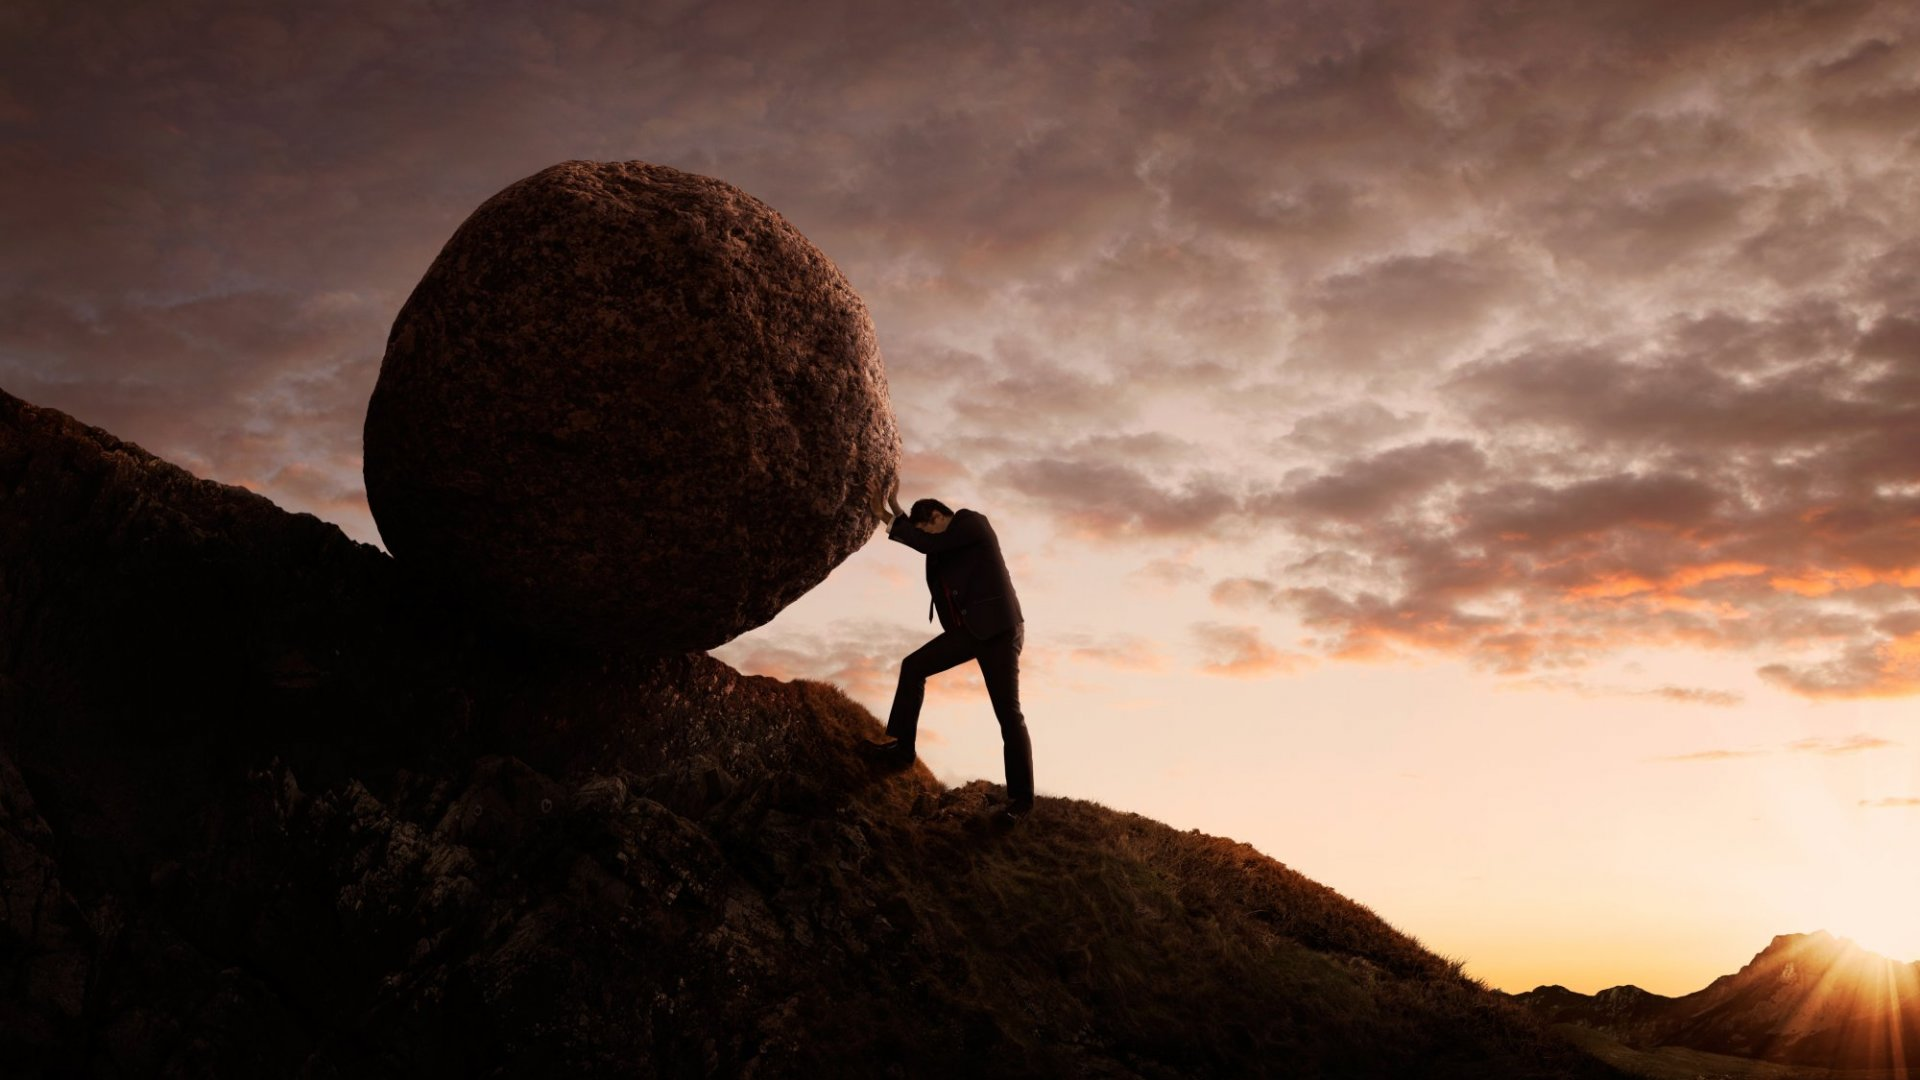 If You Want to Succeed, You Need to Hit Rock Bottom First